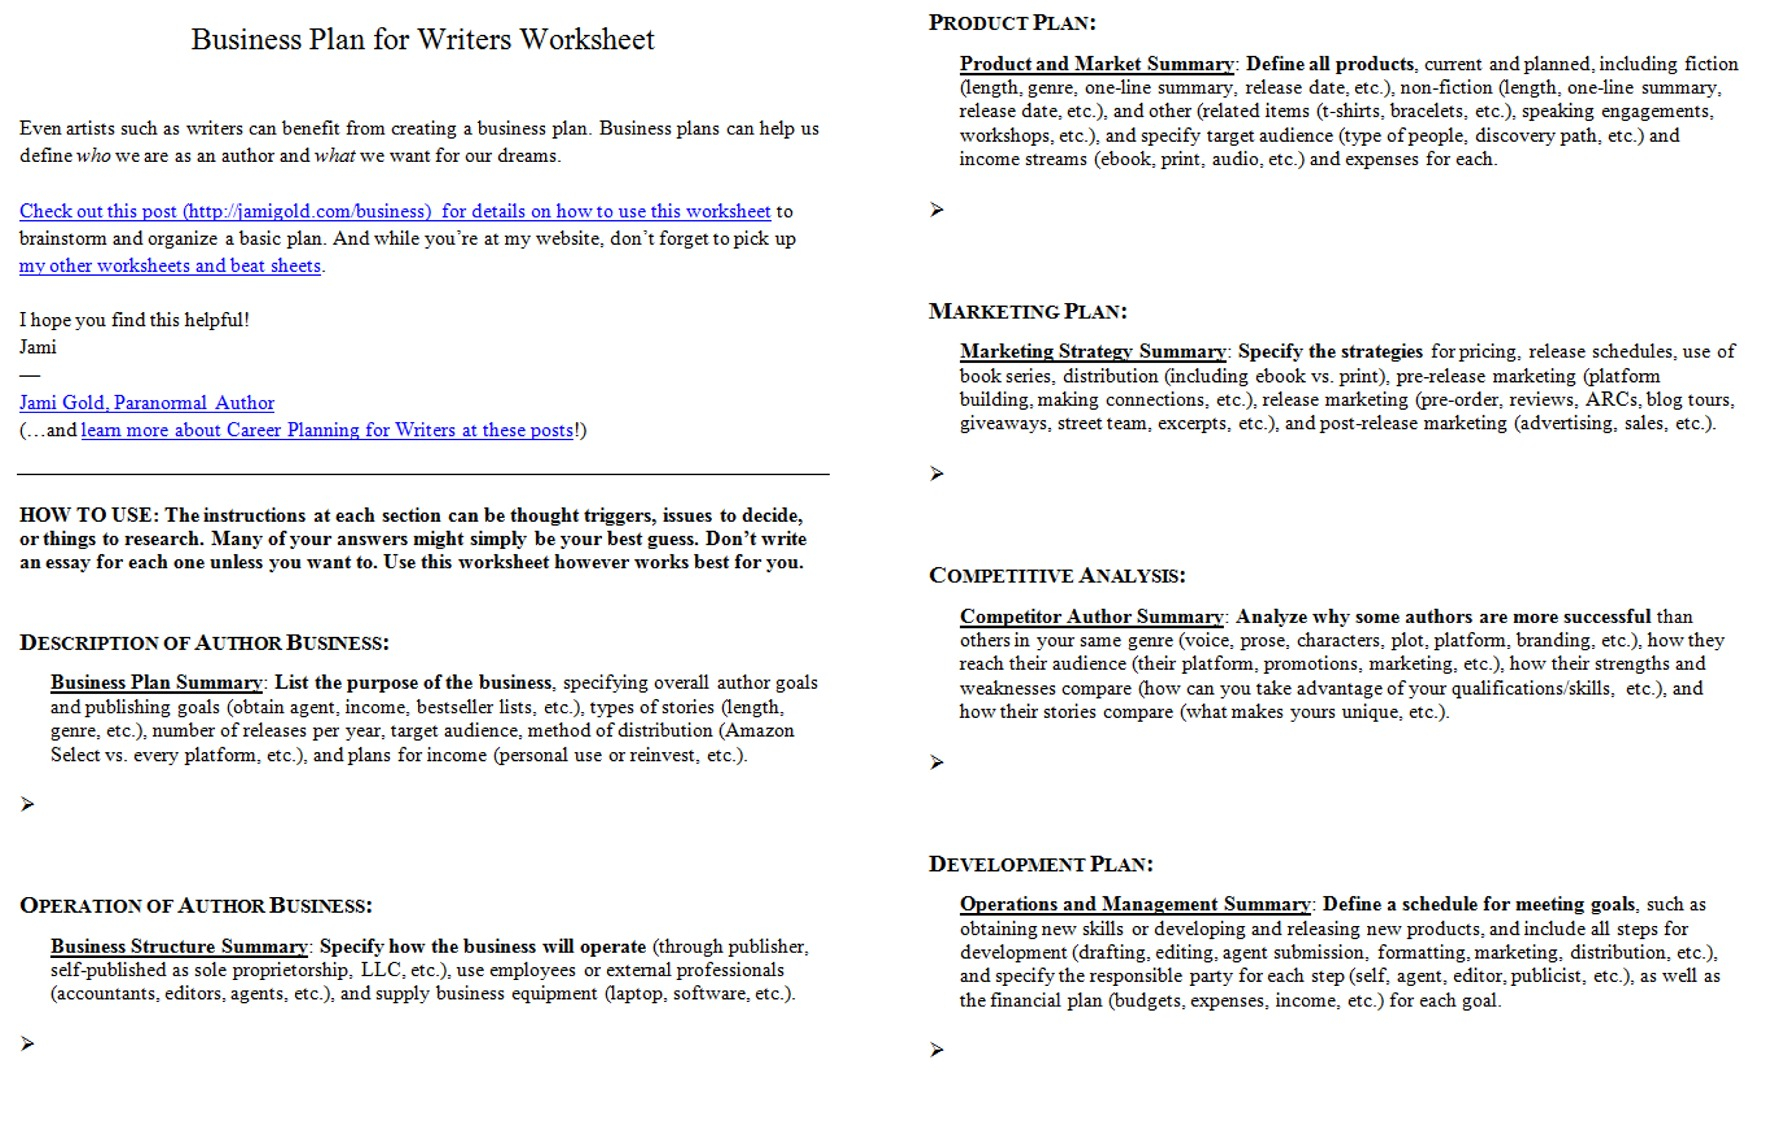 Aldiablosus  Sweet Worksheets For Writers  Jami Gold Paranormal Author With Hot Screen Shot Of Both Pages Of The Business Plan For Writers Worksheet With Awesome Time Intervals Worksheets Also Rd Grade Mental Math Worksheets In Addition Math Factor Worksheets And Numbers Worksheets  As Well As Hello Kitty Worksheets Additionally Printable Writing Worksheets For Preschoolers From Jamigoldcom With Aldiablosus  Hot Worksheets For Writers  Jami Gold Paranormal Author With Awesome Screen Shot Of Both Pages Of The Business Plan For Writers Worksheet And Sweet Time Intervals Worksheets Also Rd Grade Mental Math Worksheets In Addition Math Factor Worksheets From Jamigoldcom